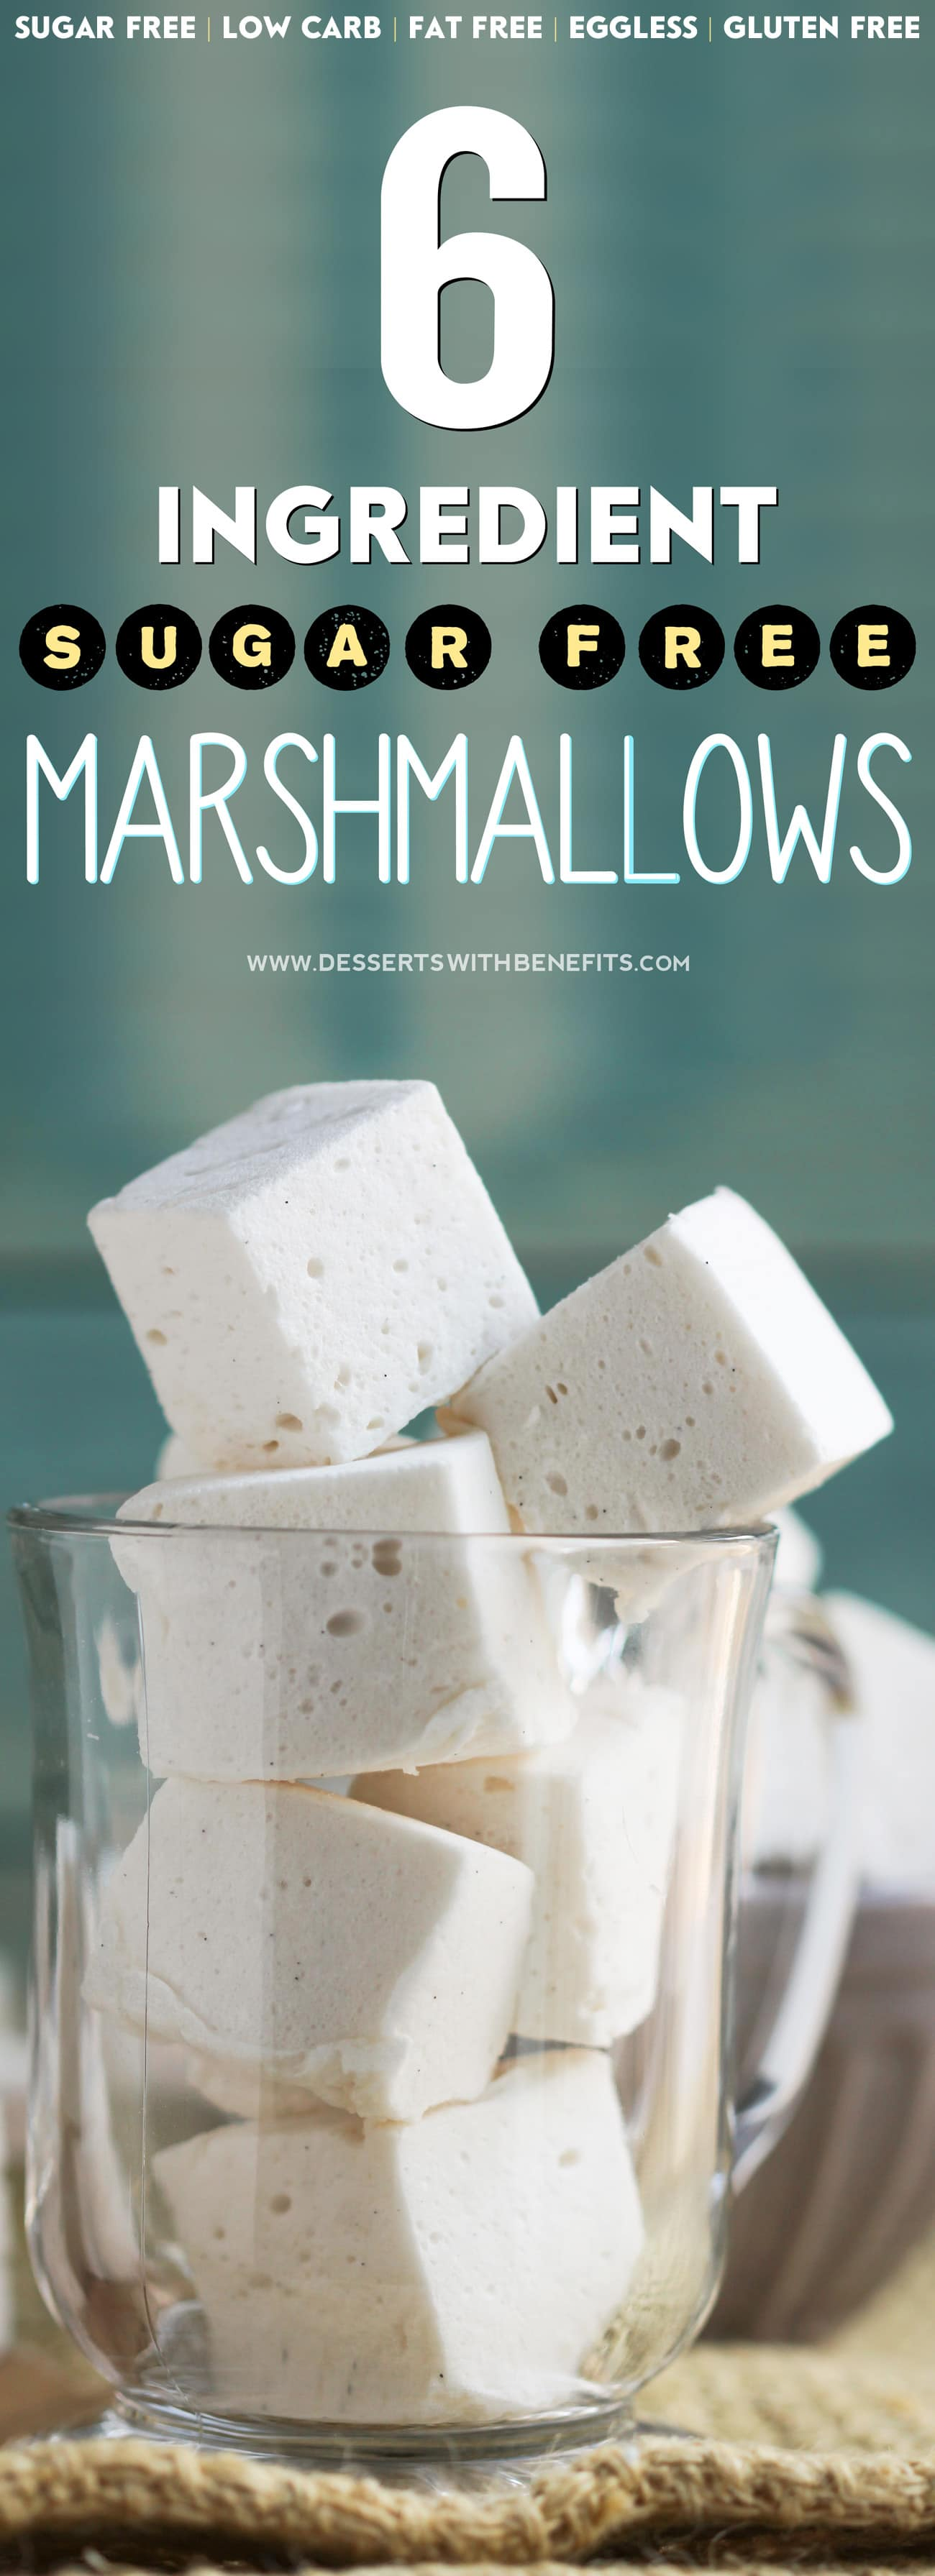 This recipe for Healthy Homemade Sugar-Free Marshmallows is SUPER fun to make and requires just 6 ingredients! You'd never know that these fluffy, sweet marshmallows are all natural, sugar free, low carb, fat free, eggless, and gluten free -- Healthy Dessert Recipes at Desserts with Benefits